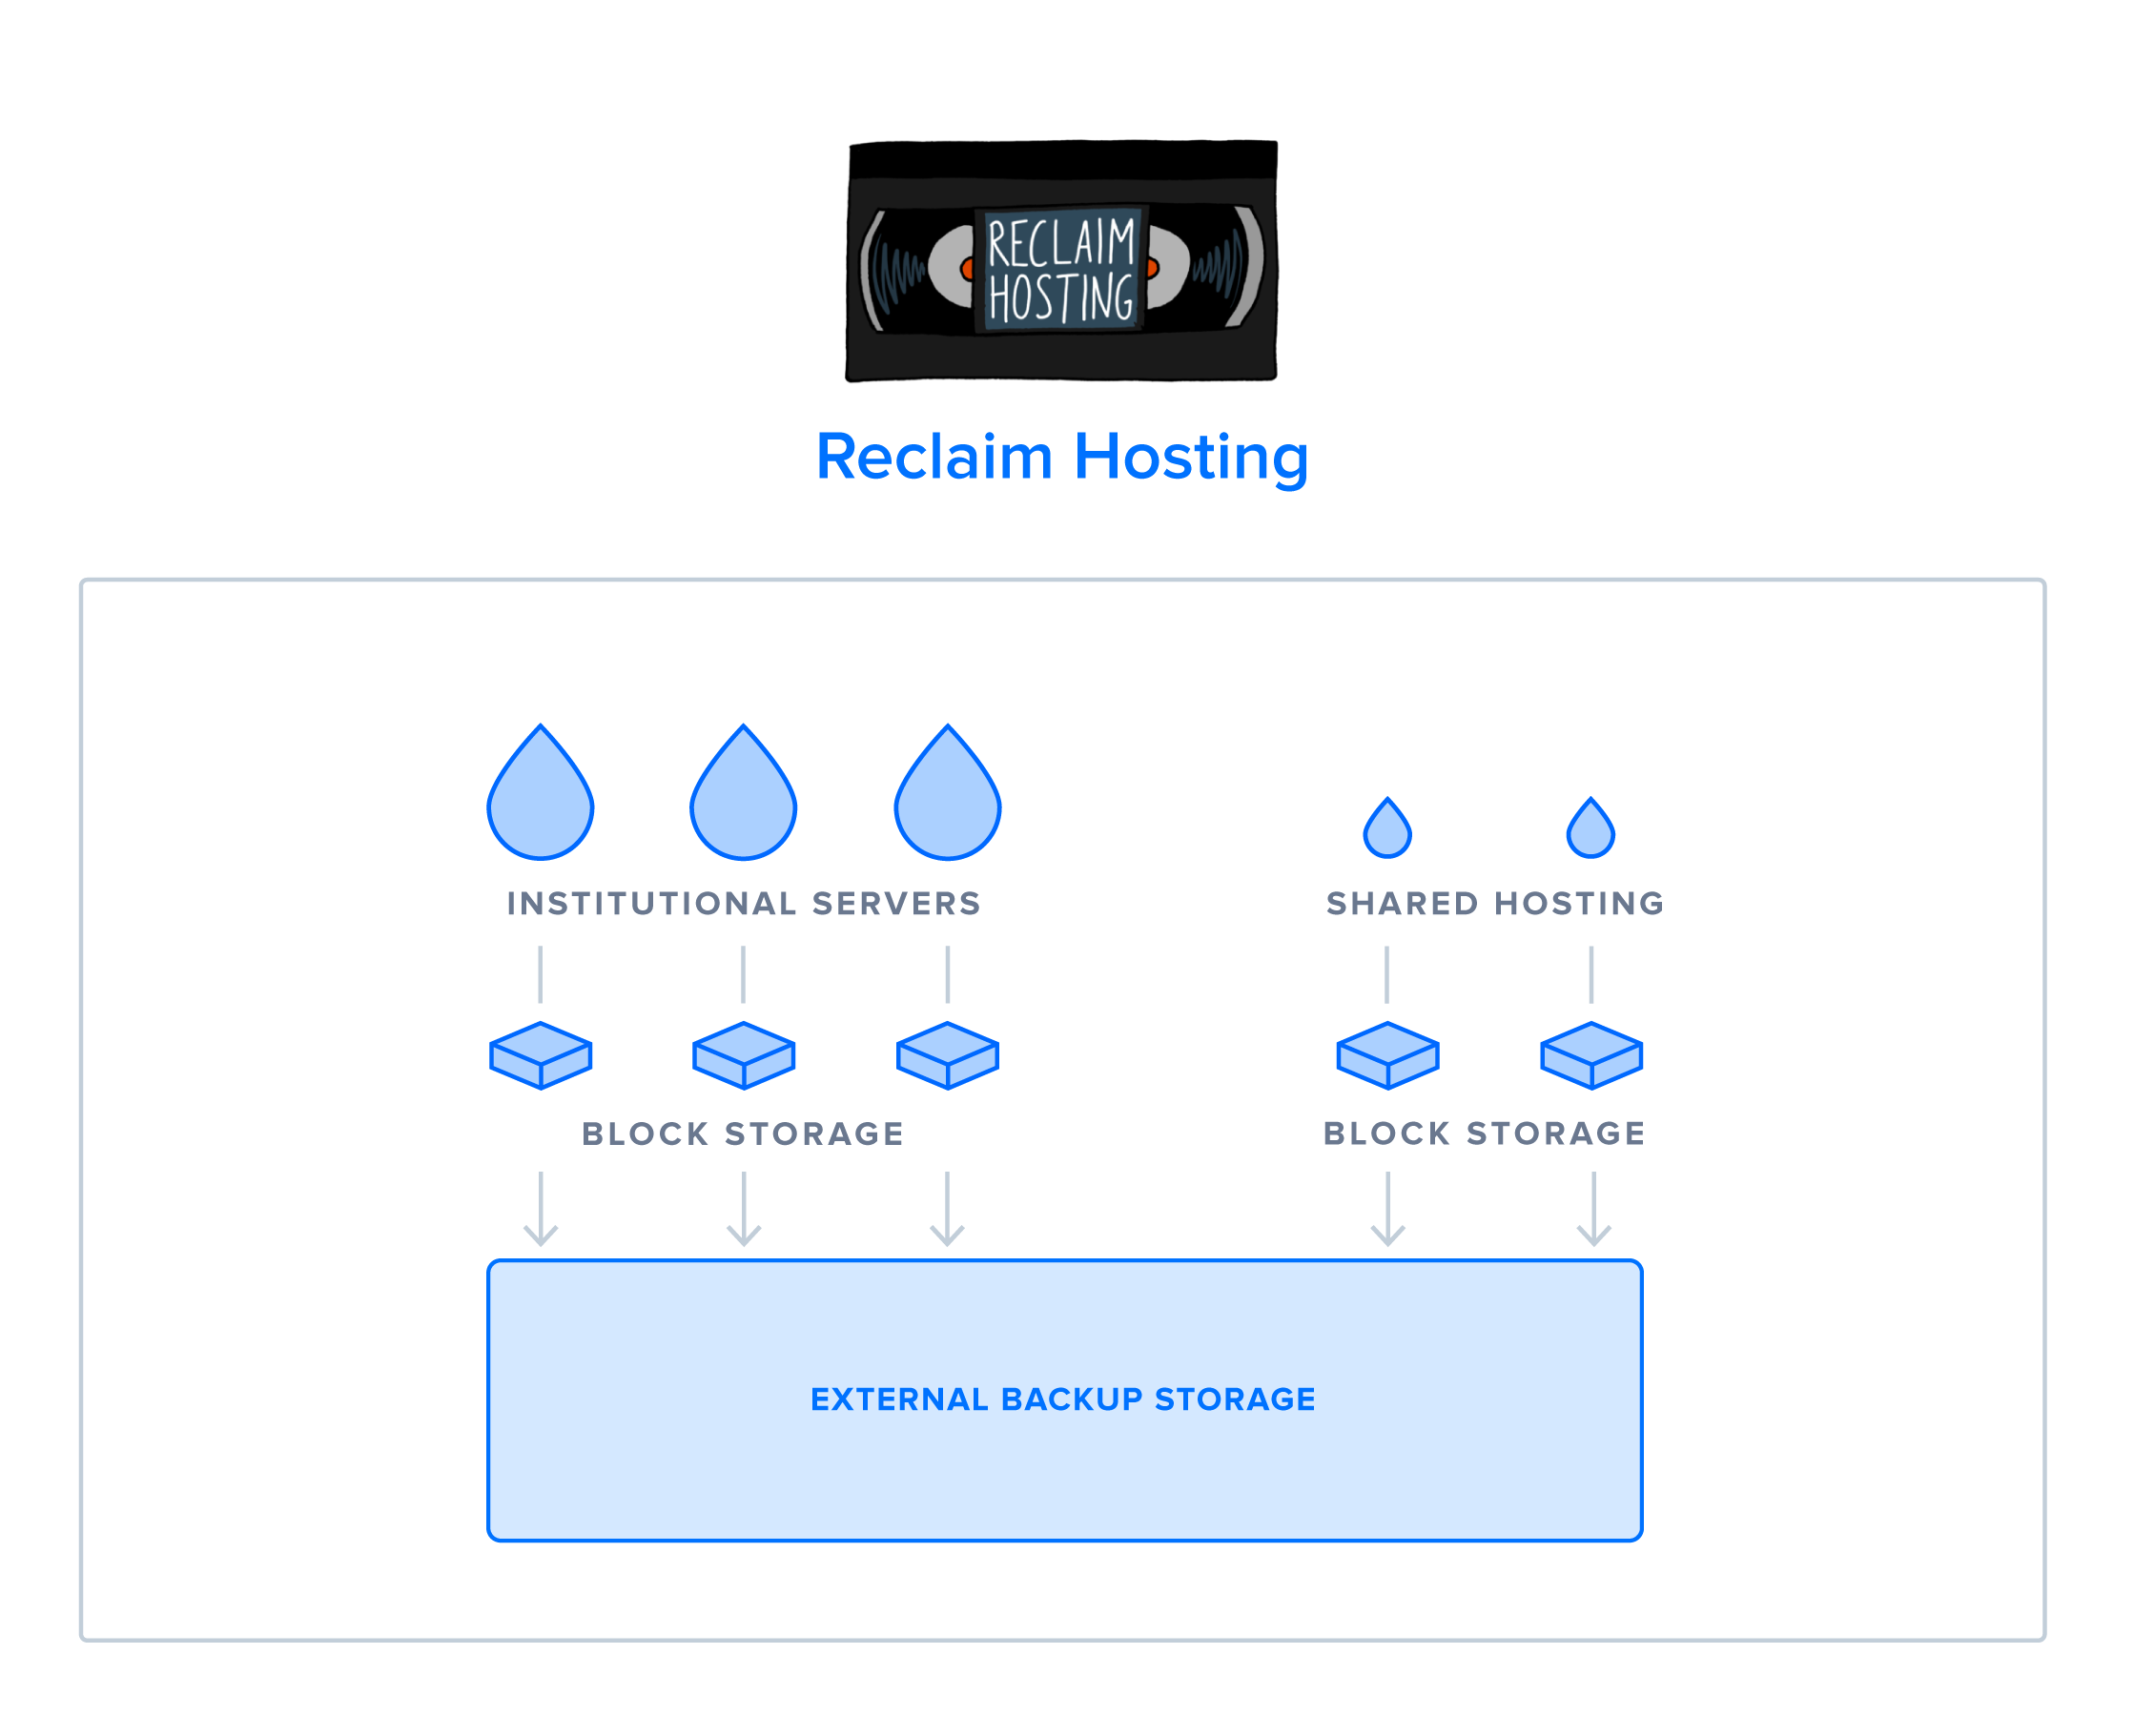 Diagram of Reclaim Hosting's current infratsructure setup